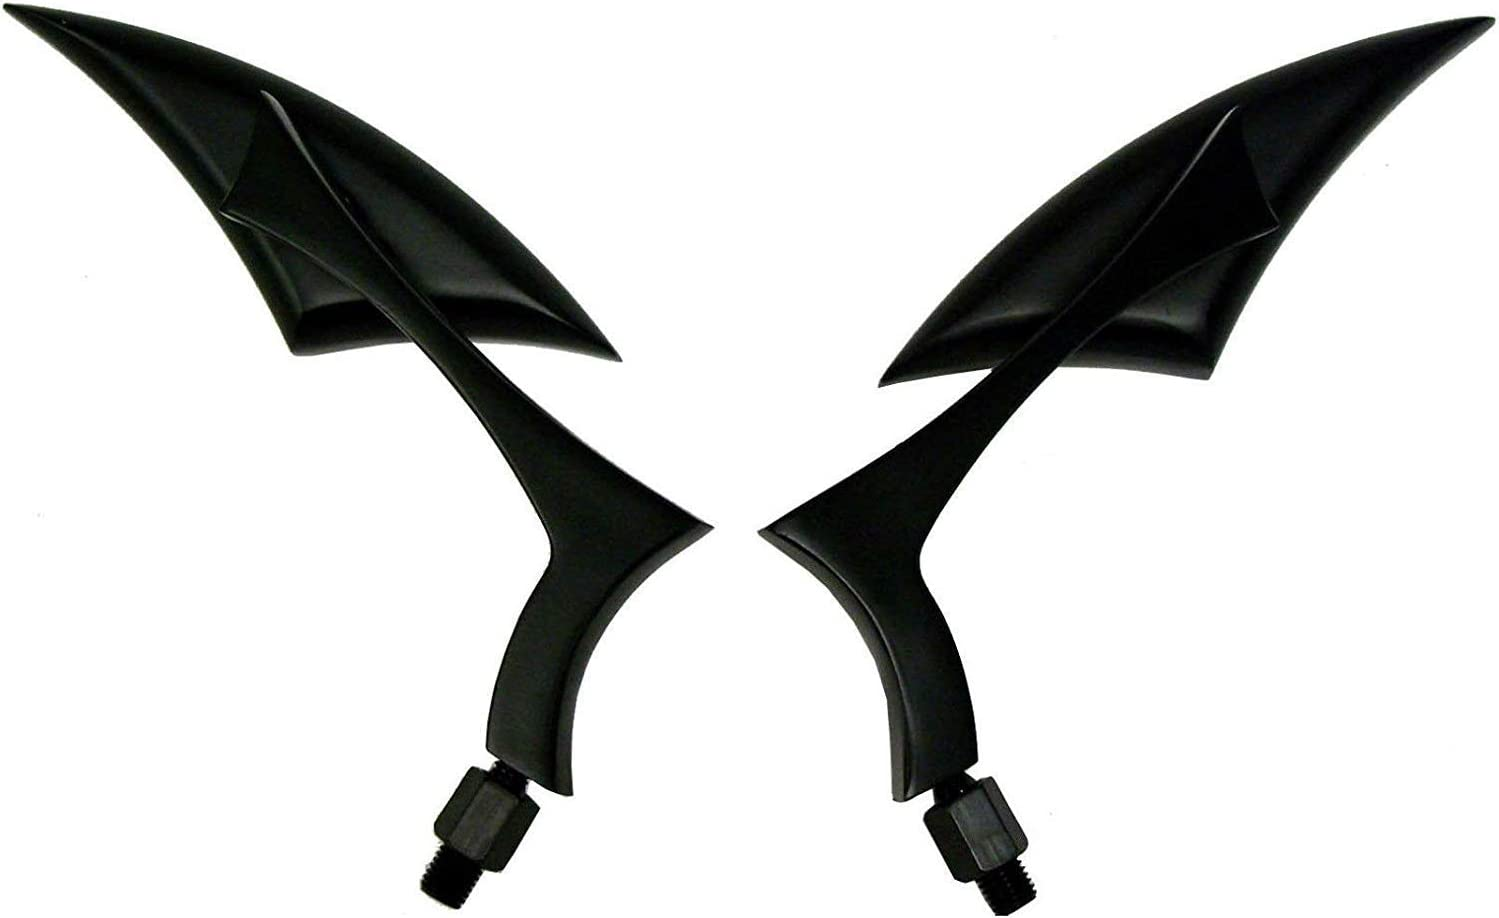 1Pair Black CNC Spear Style Motorcycle Deluxe 201 Mirrors Oakland Mall for View Rear